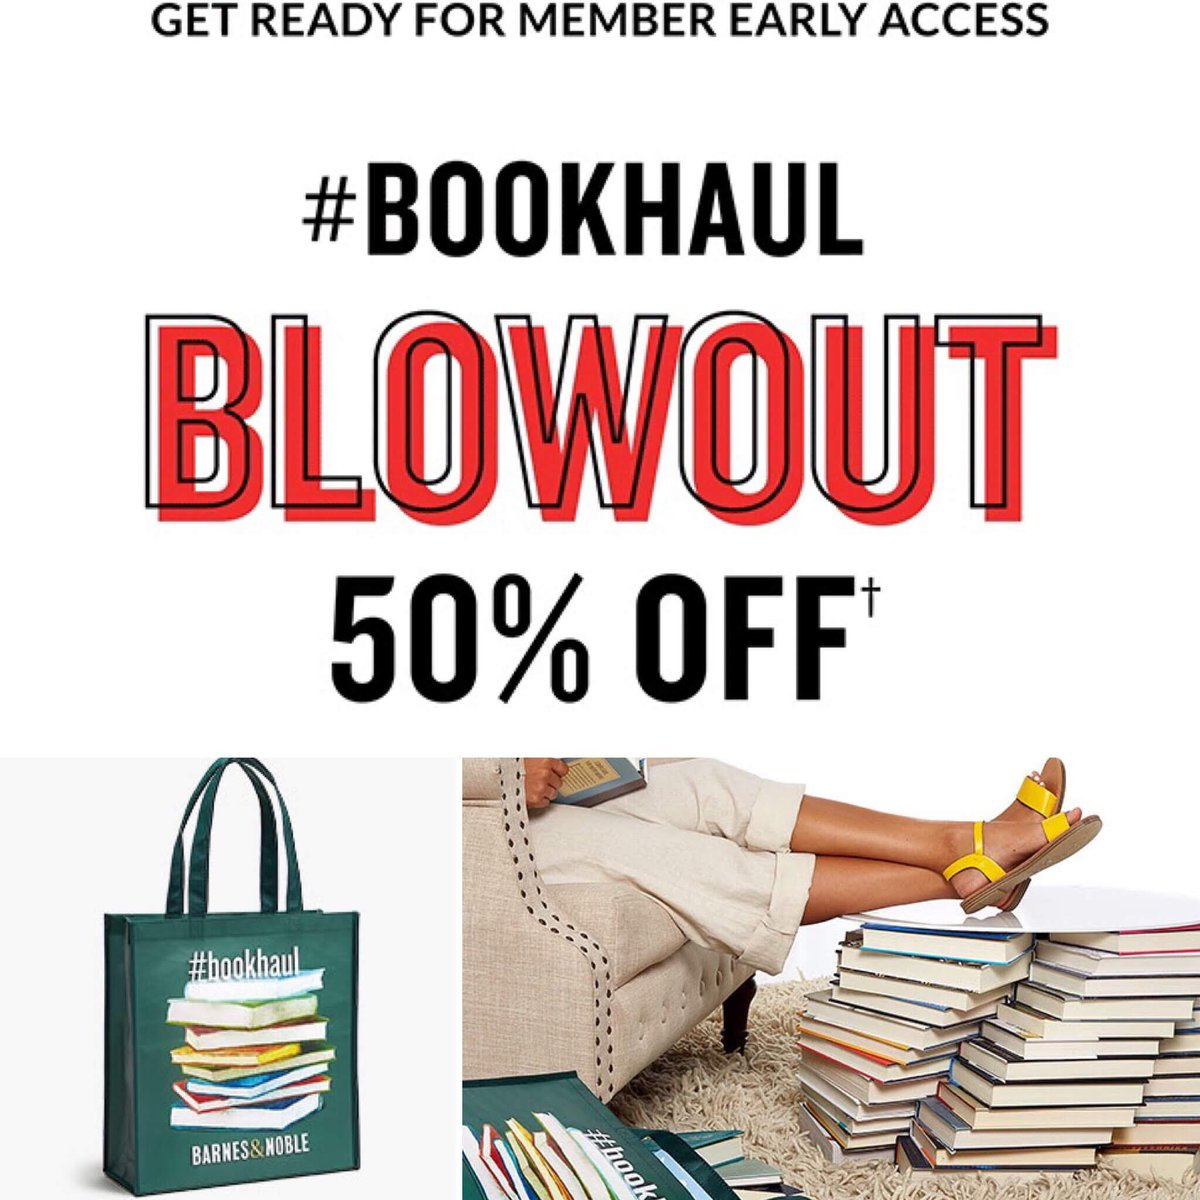 Bn Bayshore On Twitter Bnbookhaul Is Back Early Member